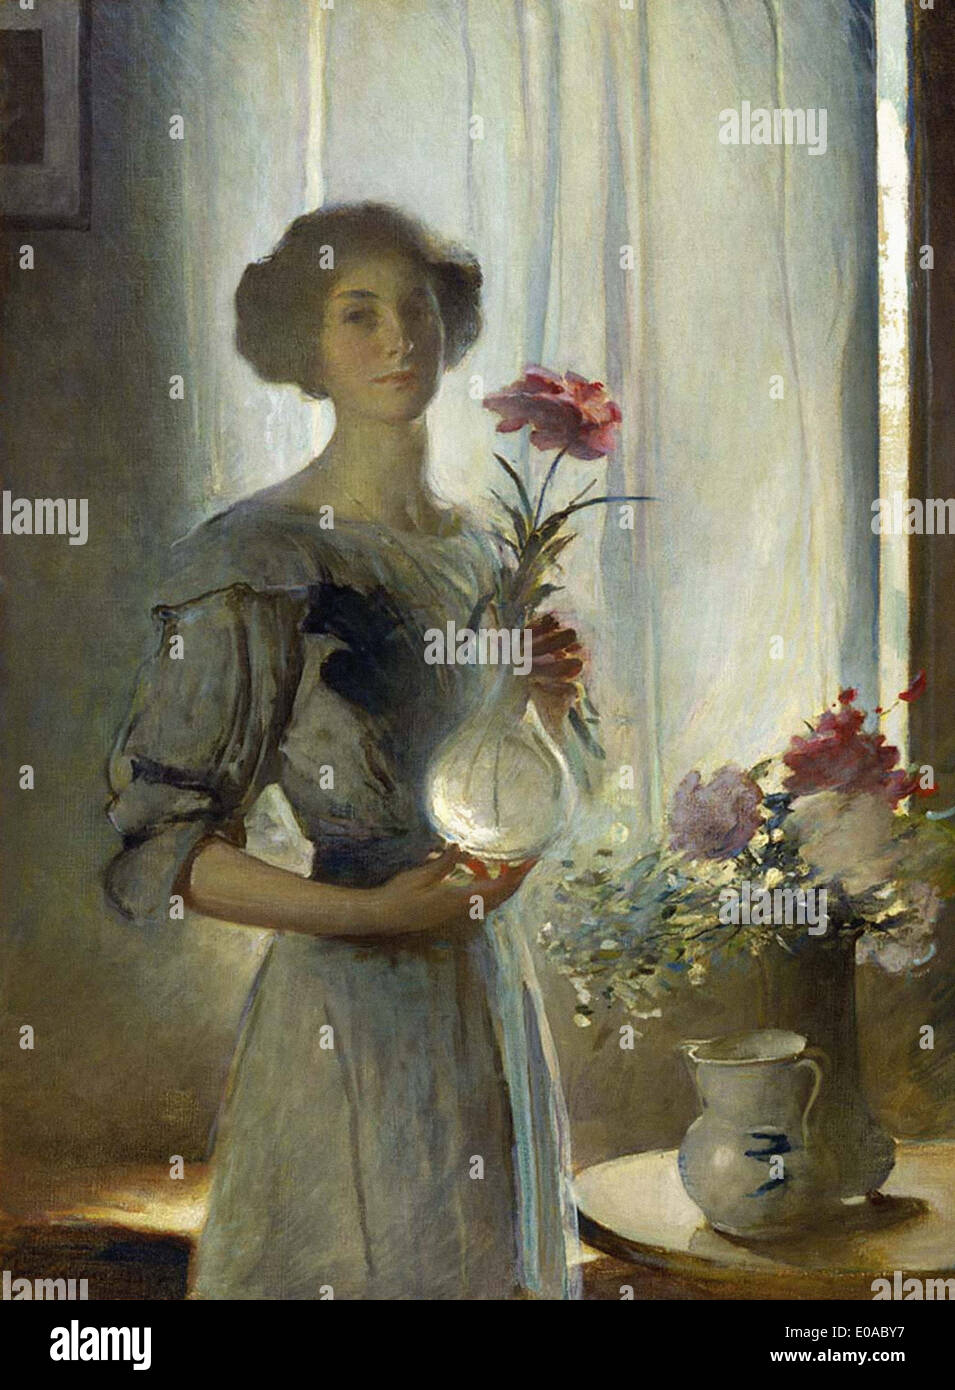 John White Alexander Juin Photo Stock